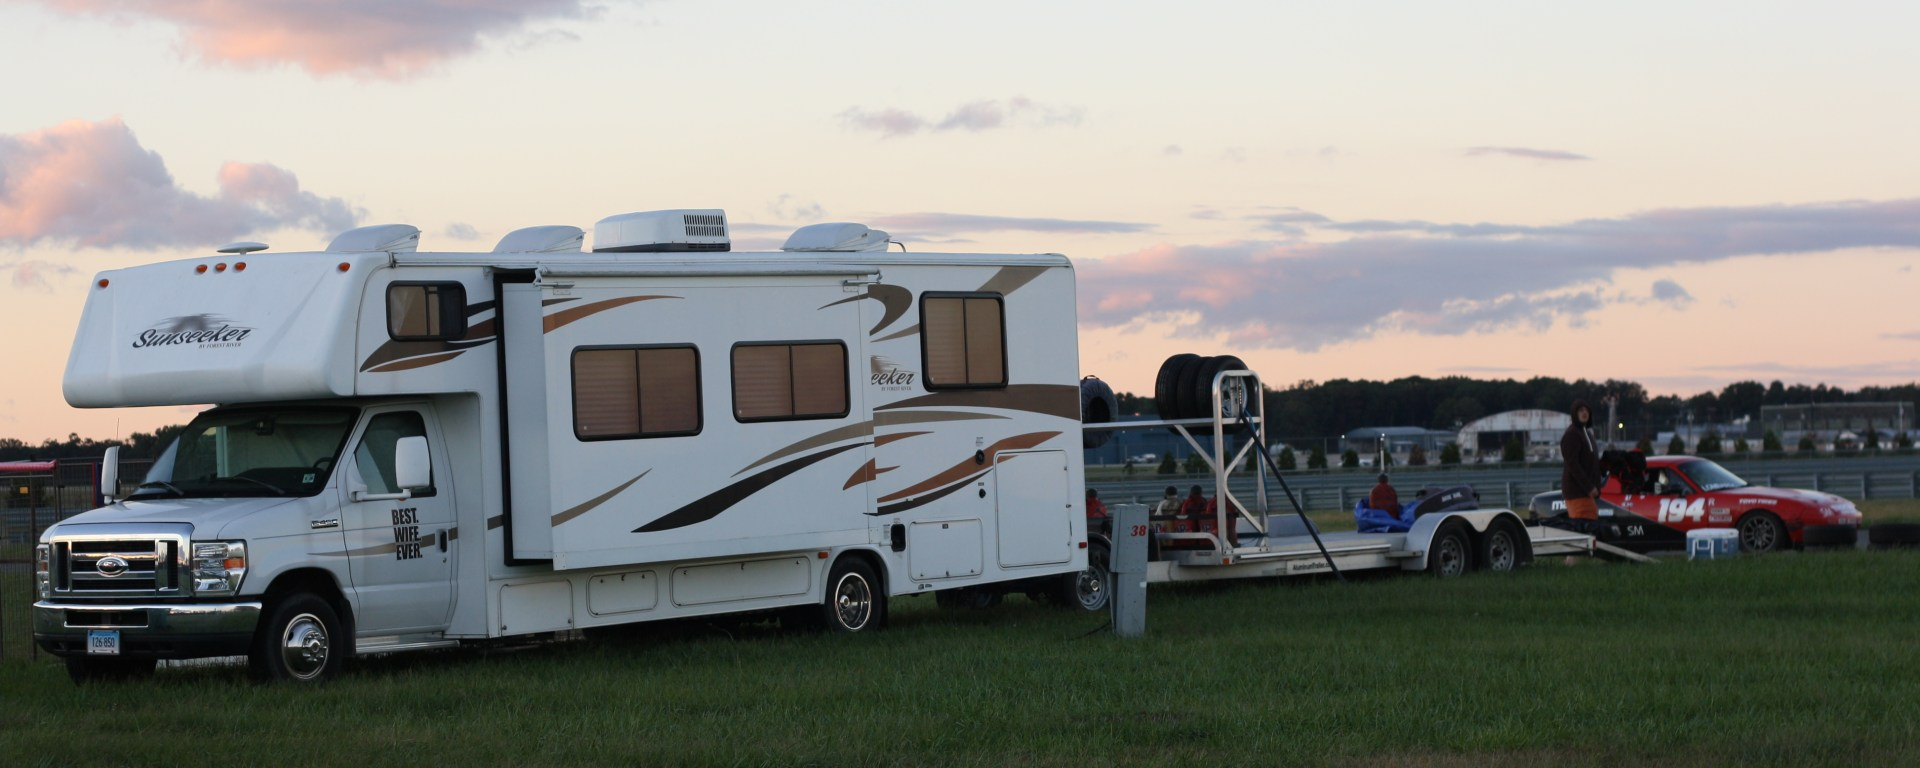 RV with trailer to transport racecar